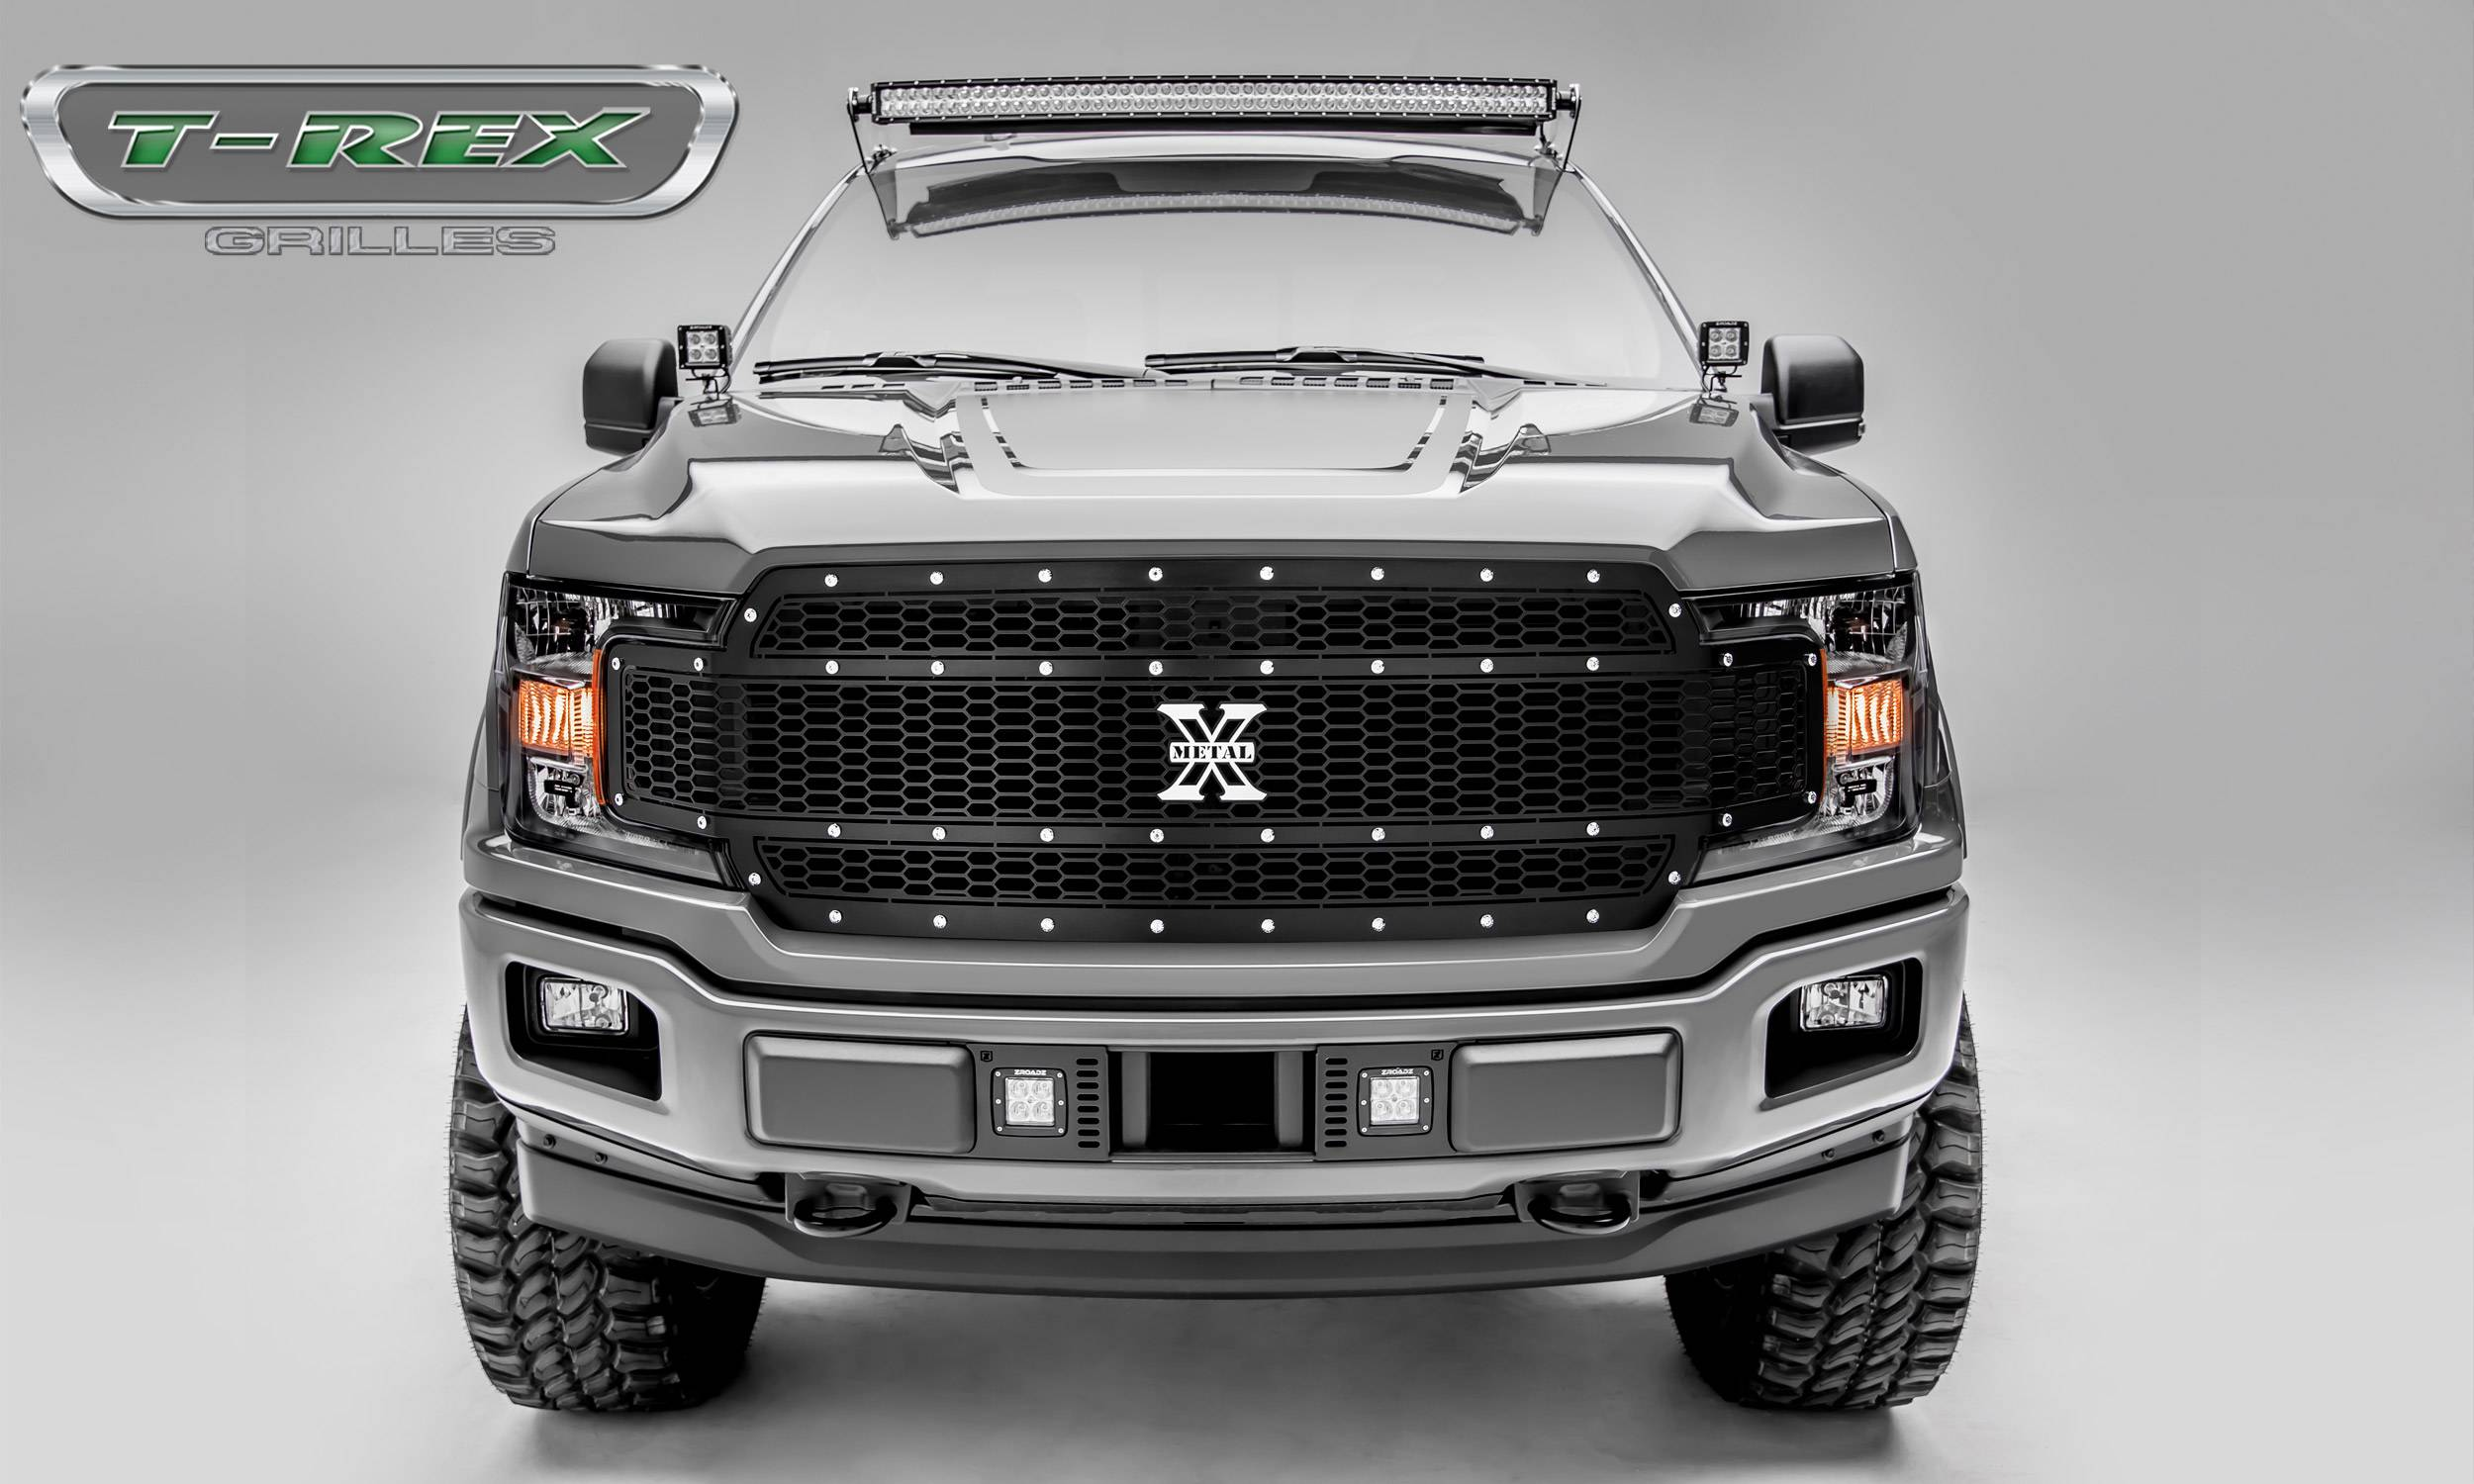 T-REX Grilles - Ford F-150 - Laser X-Metal Series - Main Grille Replacement - Laser Cut Steel Pattern - Chrome Studs with Black Powdercoat Finish - Pt # 7715841